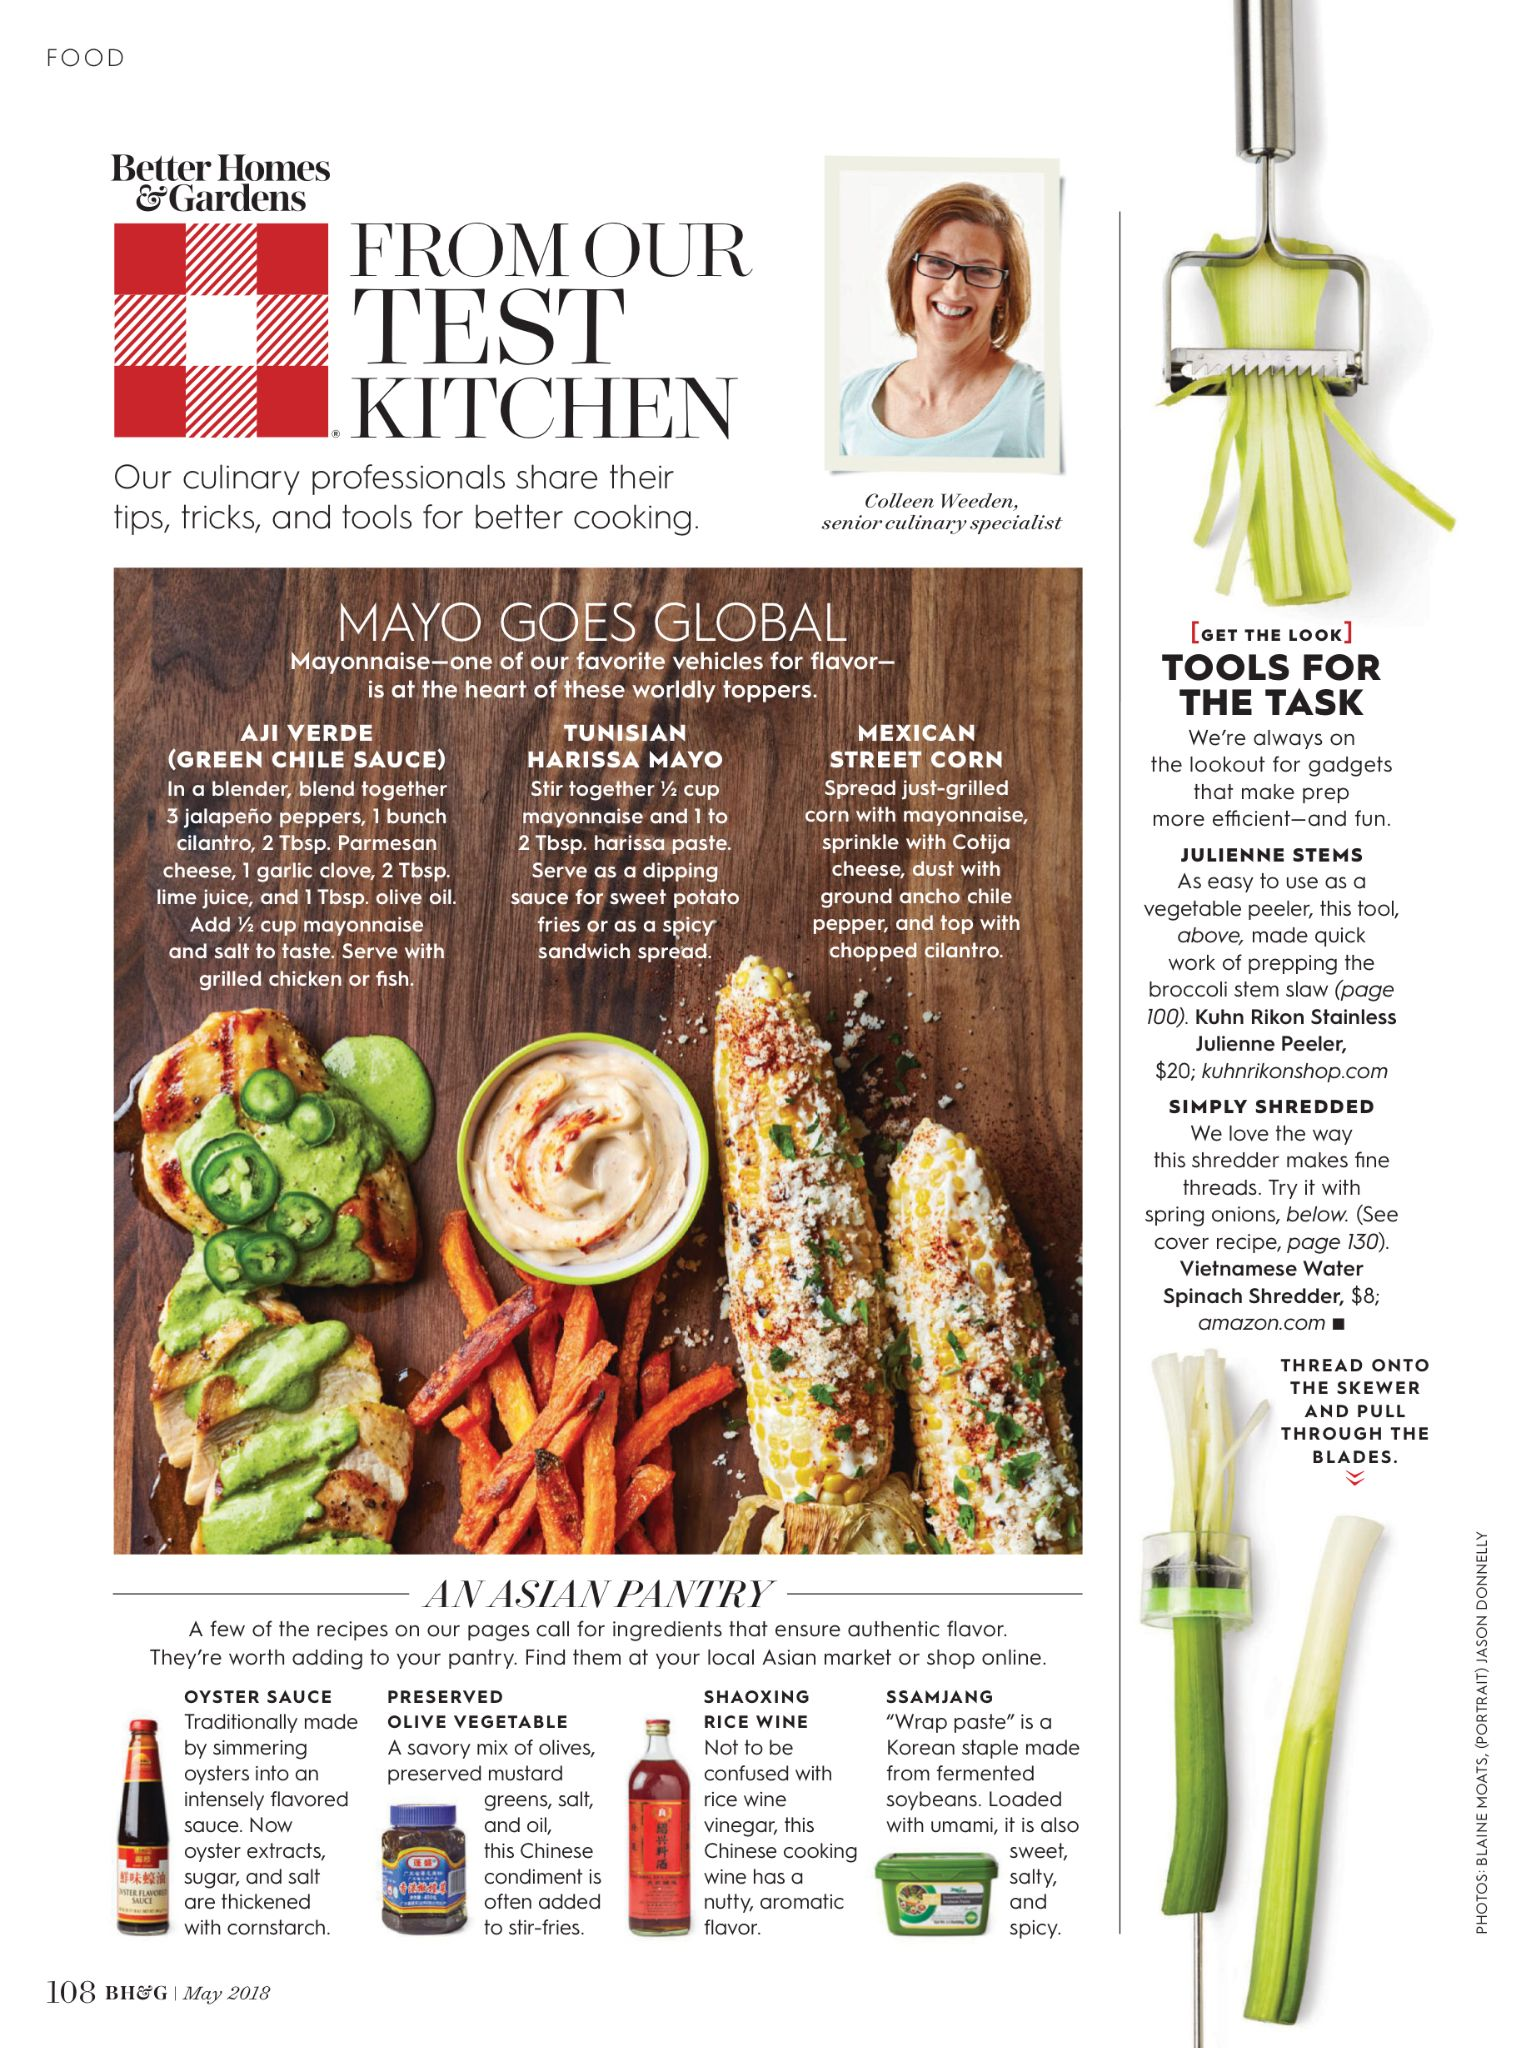 f5237bcb4fe1be3a26dffdadc0f63342 - Better Homes And Gardens 2018 Recipes